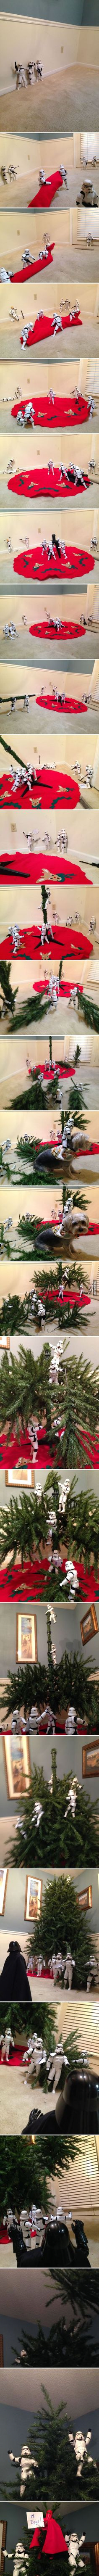 StormTroopers Assembling the Christmas Tree